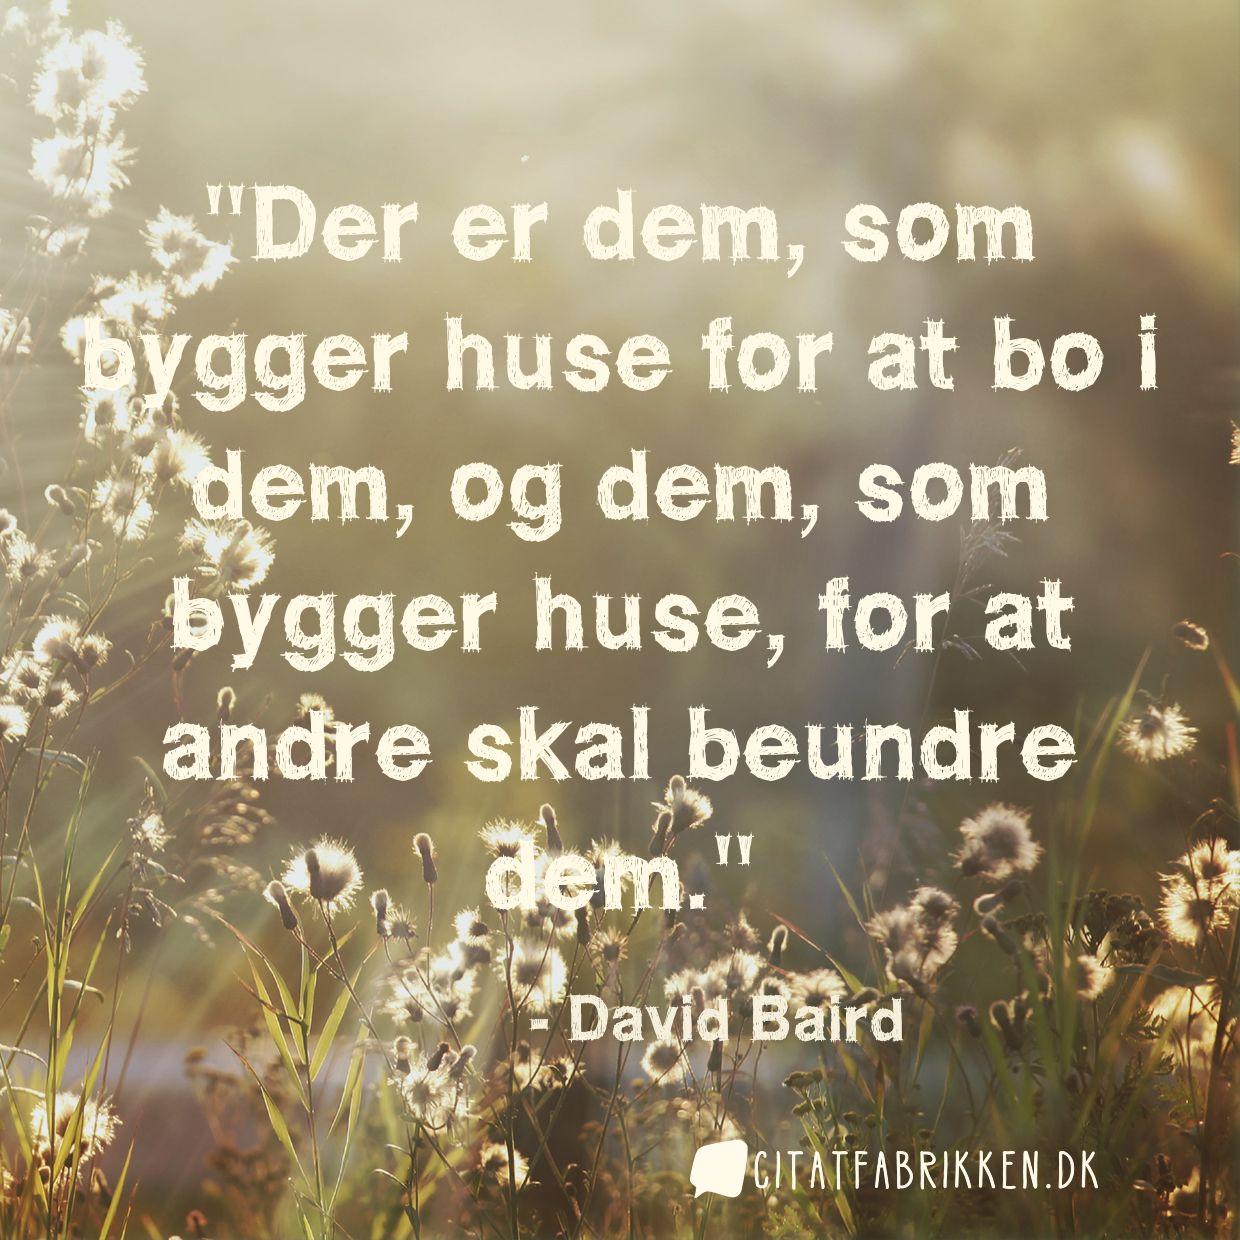 Der er dem, som bygger huse for at bo i dem, og dem, som bygger huse, for at andre skal beundre dem.